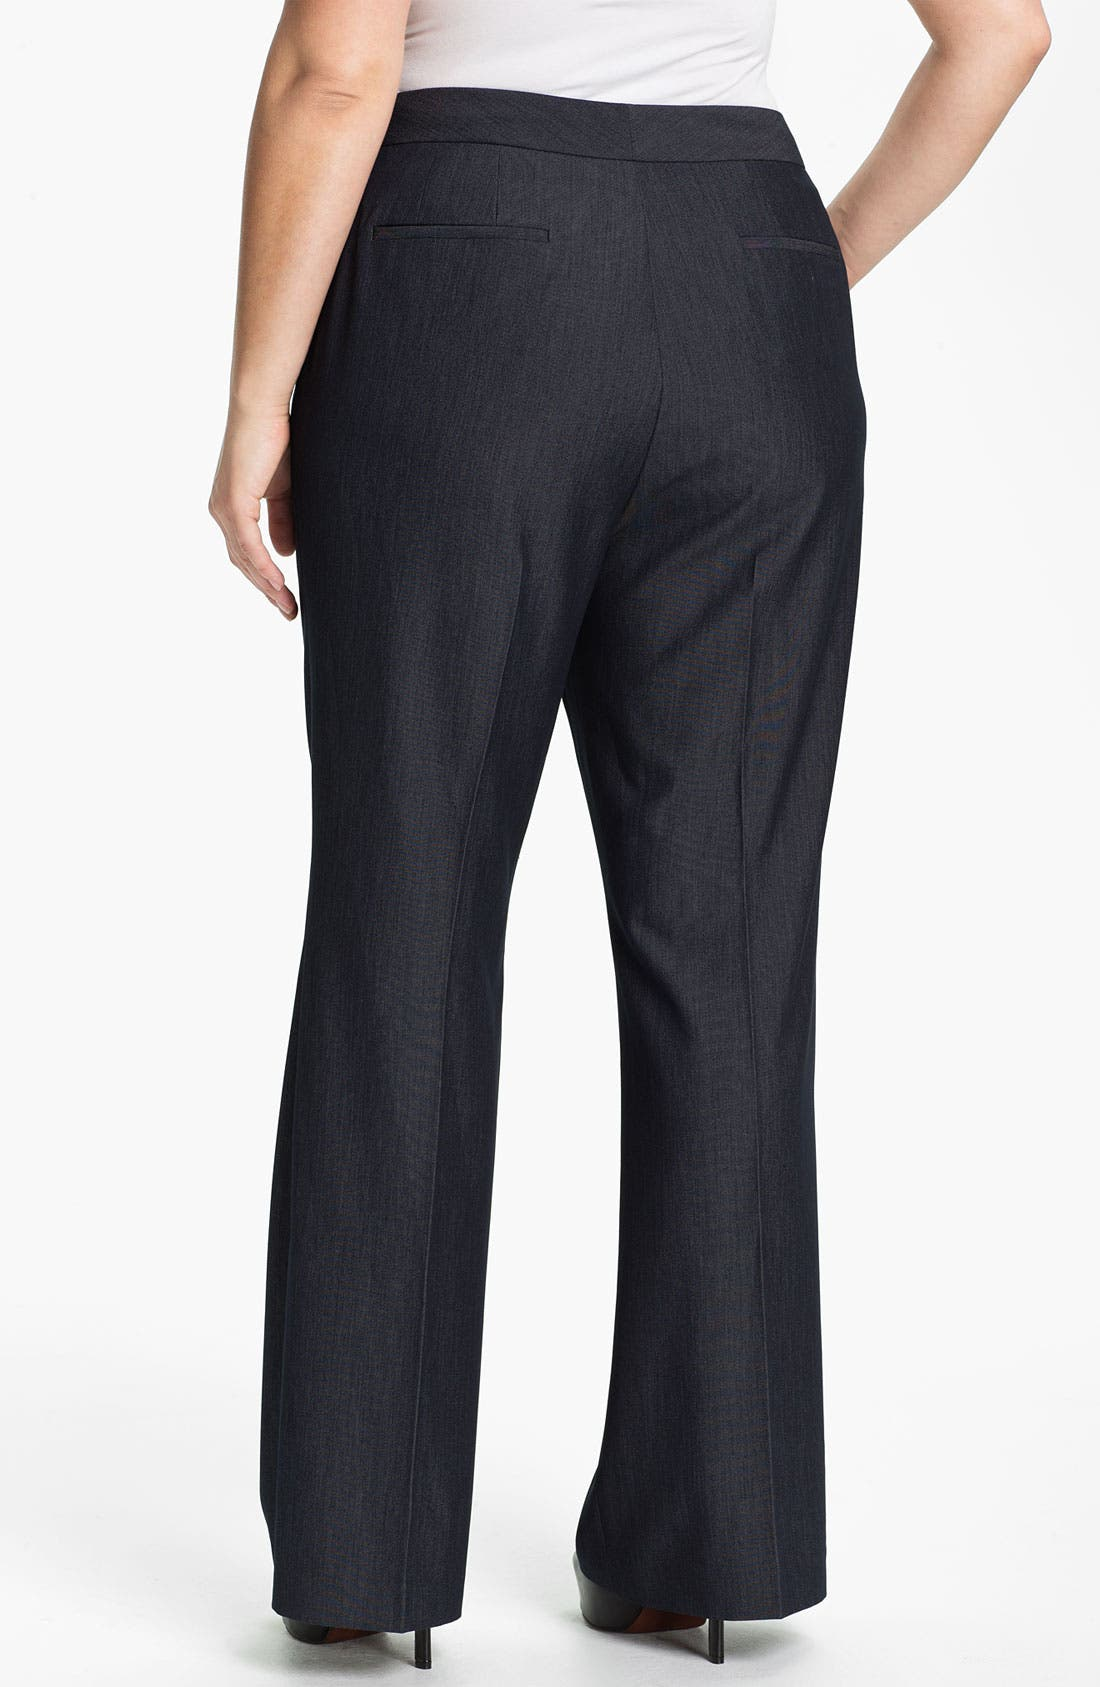 Alternate Image 2  - Tahari Woman 'Merlin' Pants (Plus)